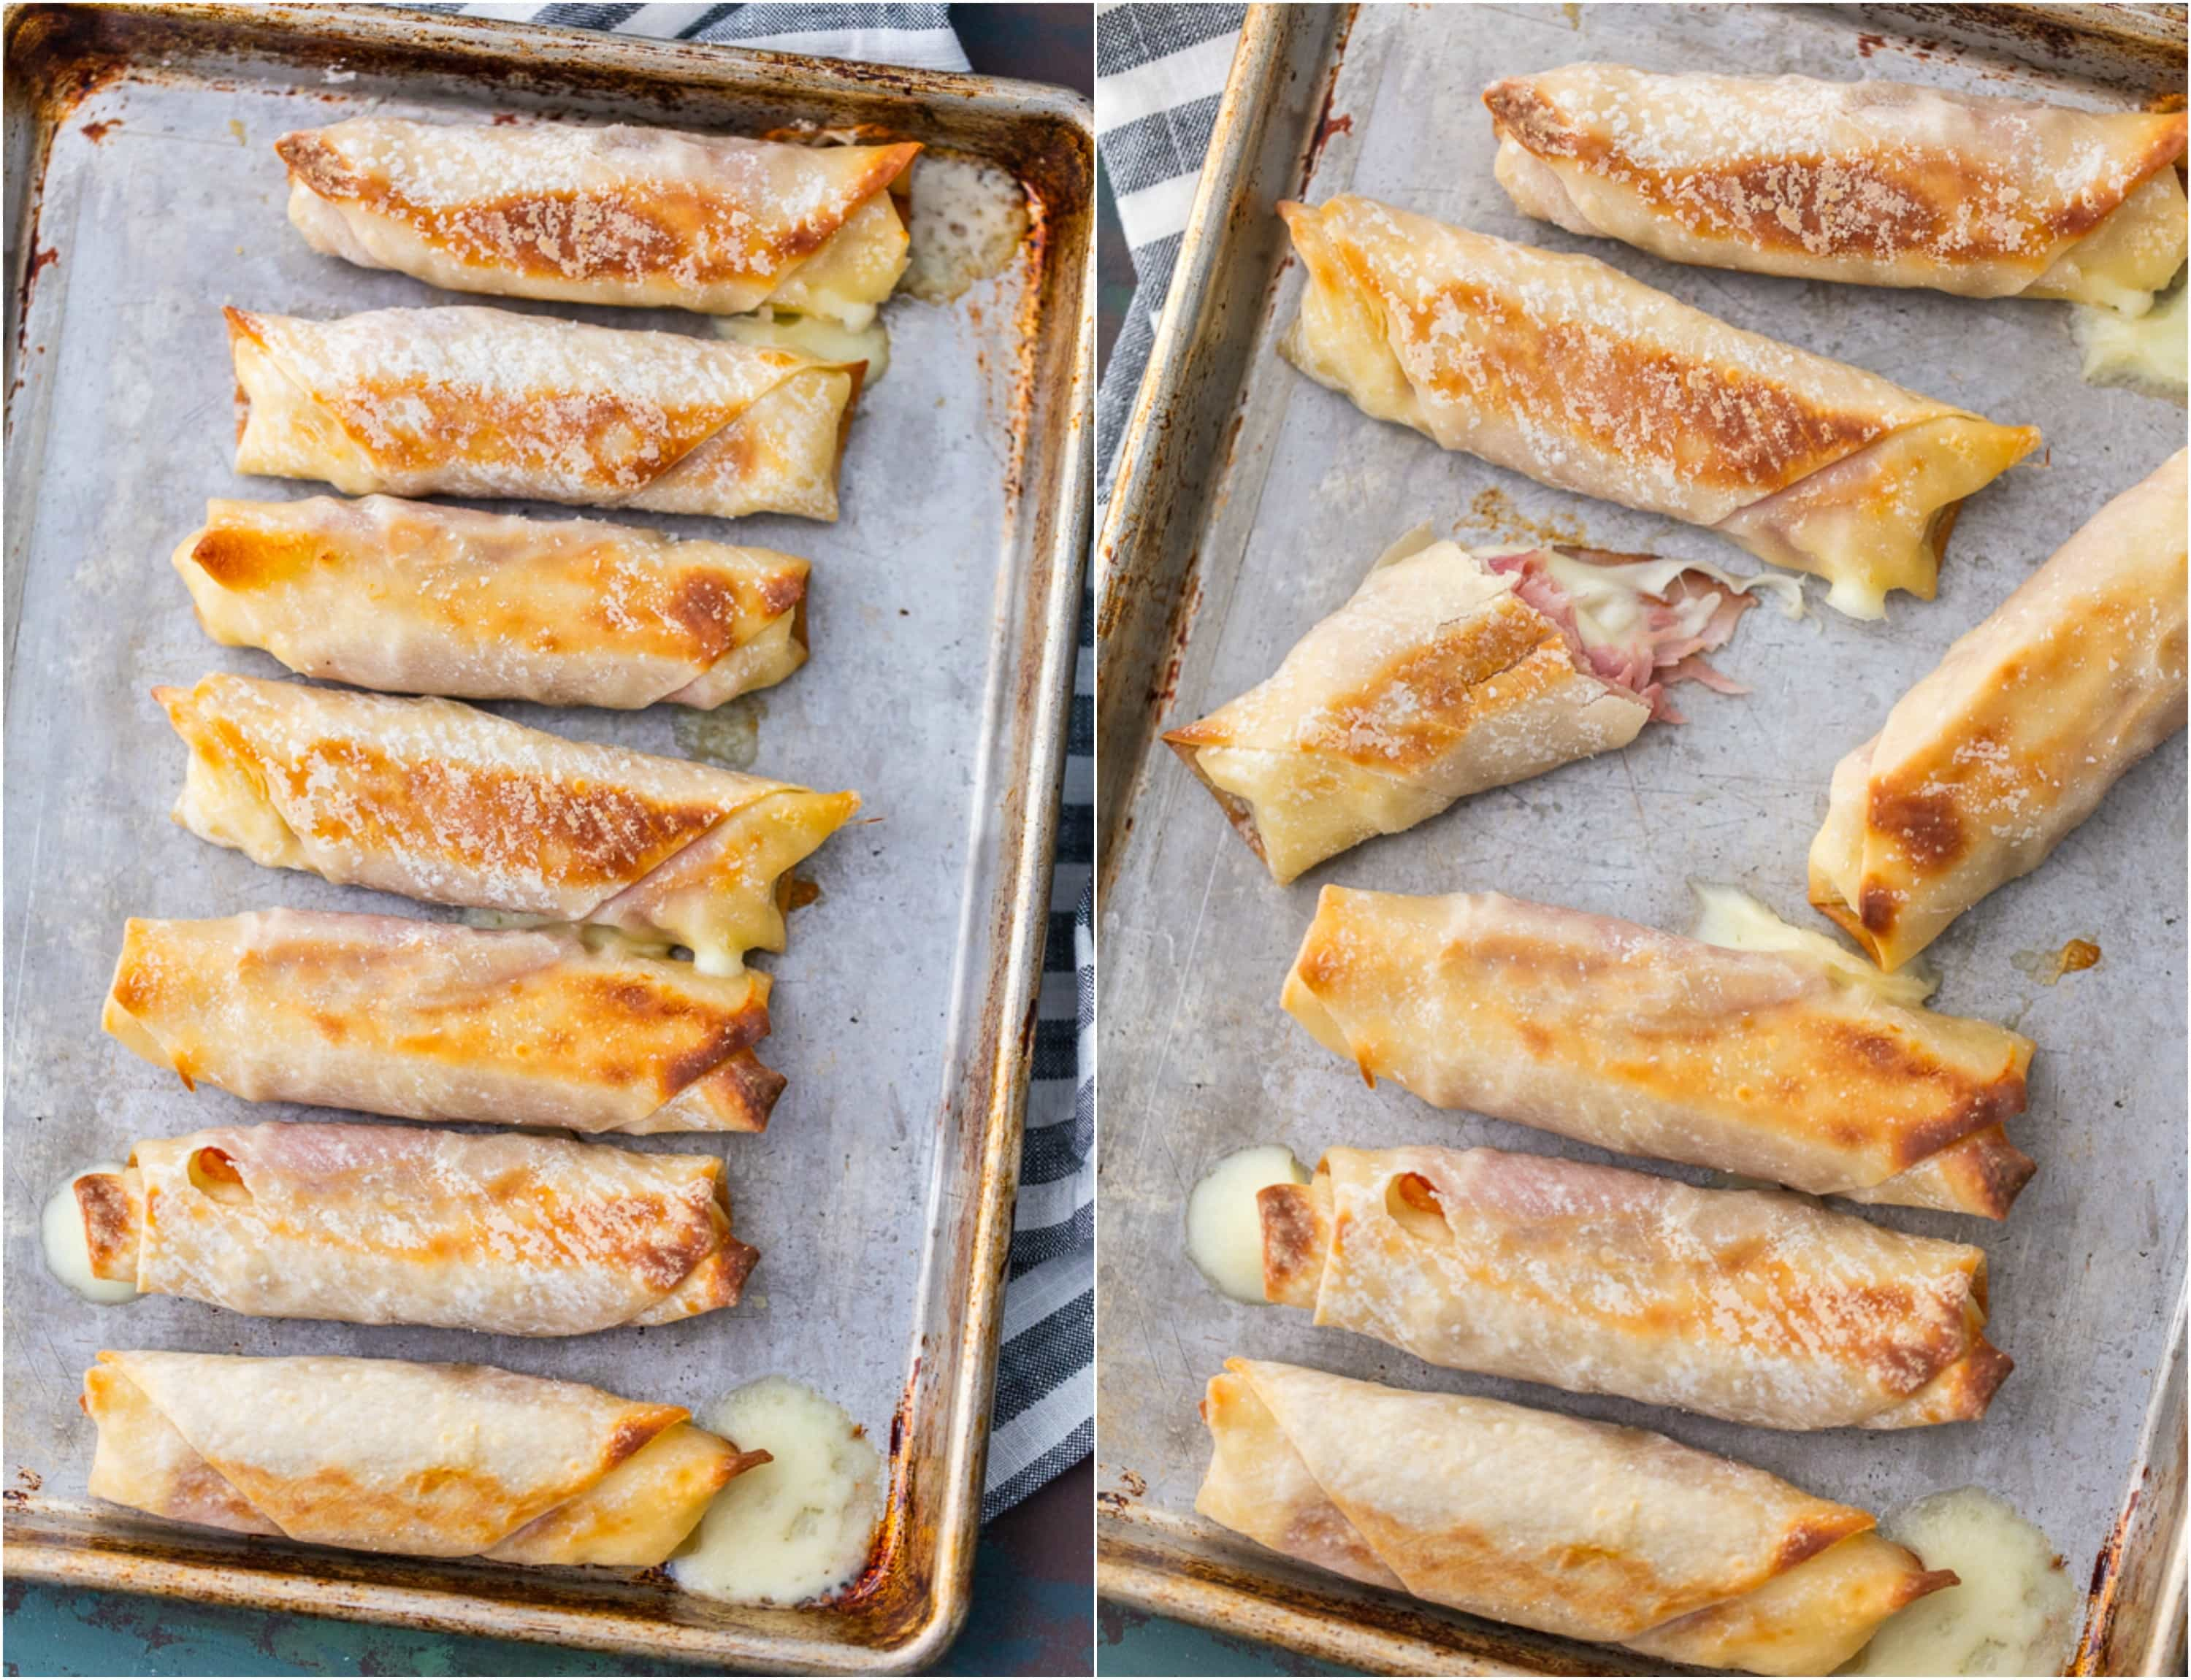 These BAKED HAM AND CHEESE MOZZARELLA STICKS are a healthier and delicious snack you can feel great about feeding your family. So easy and yum!